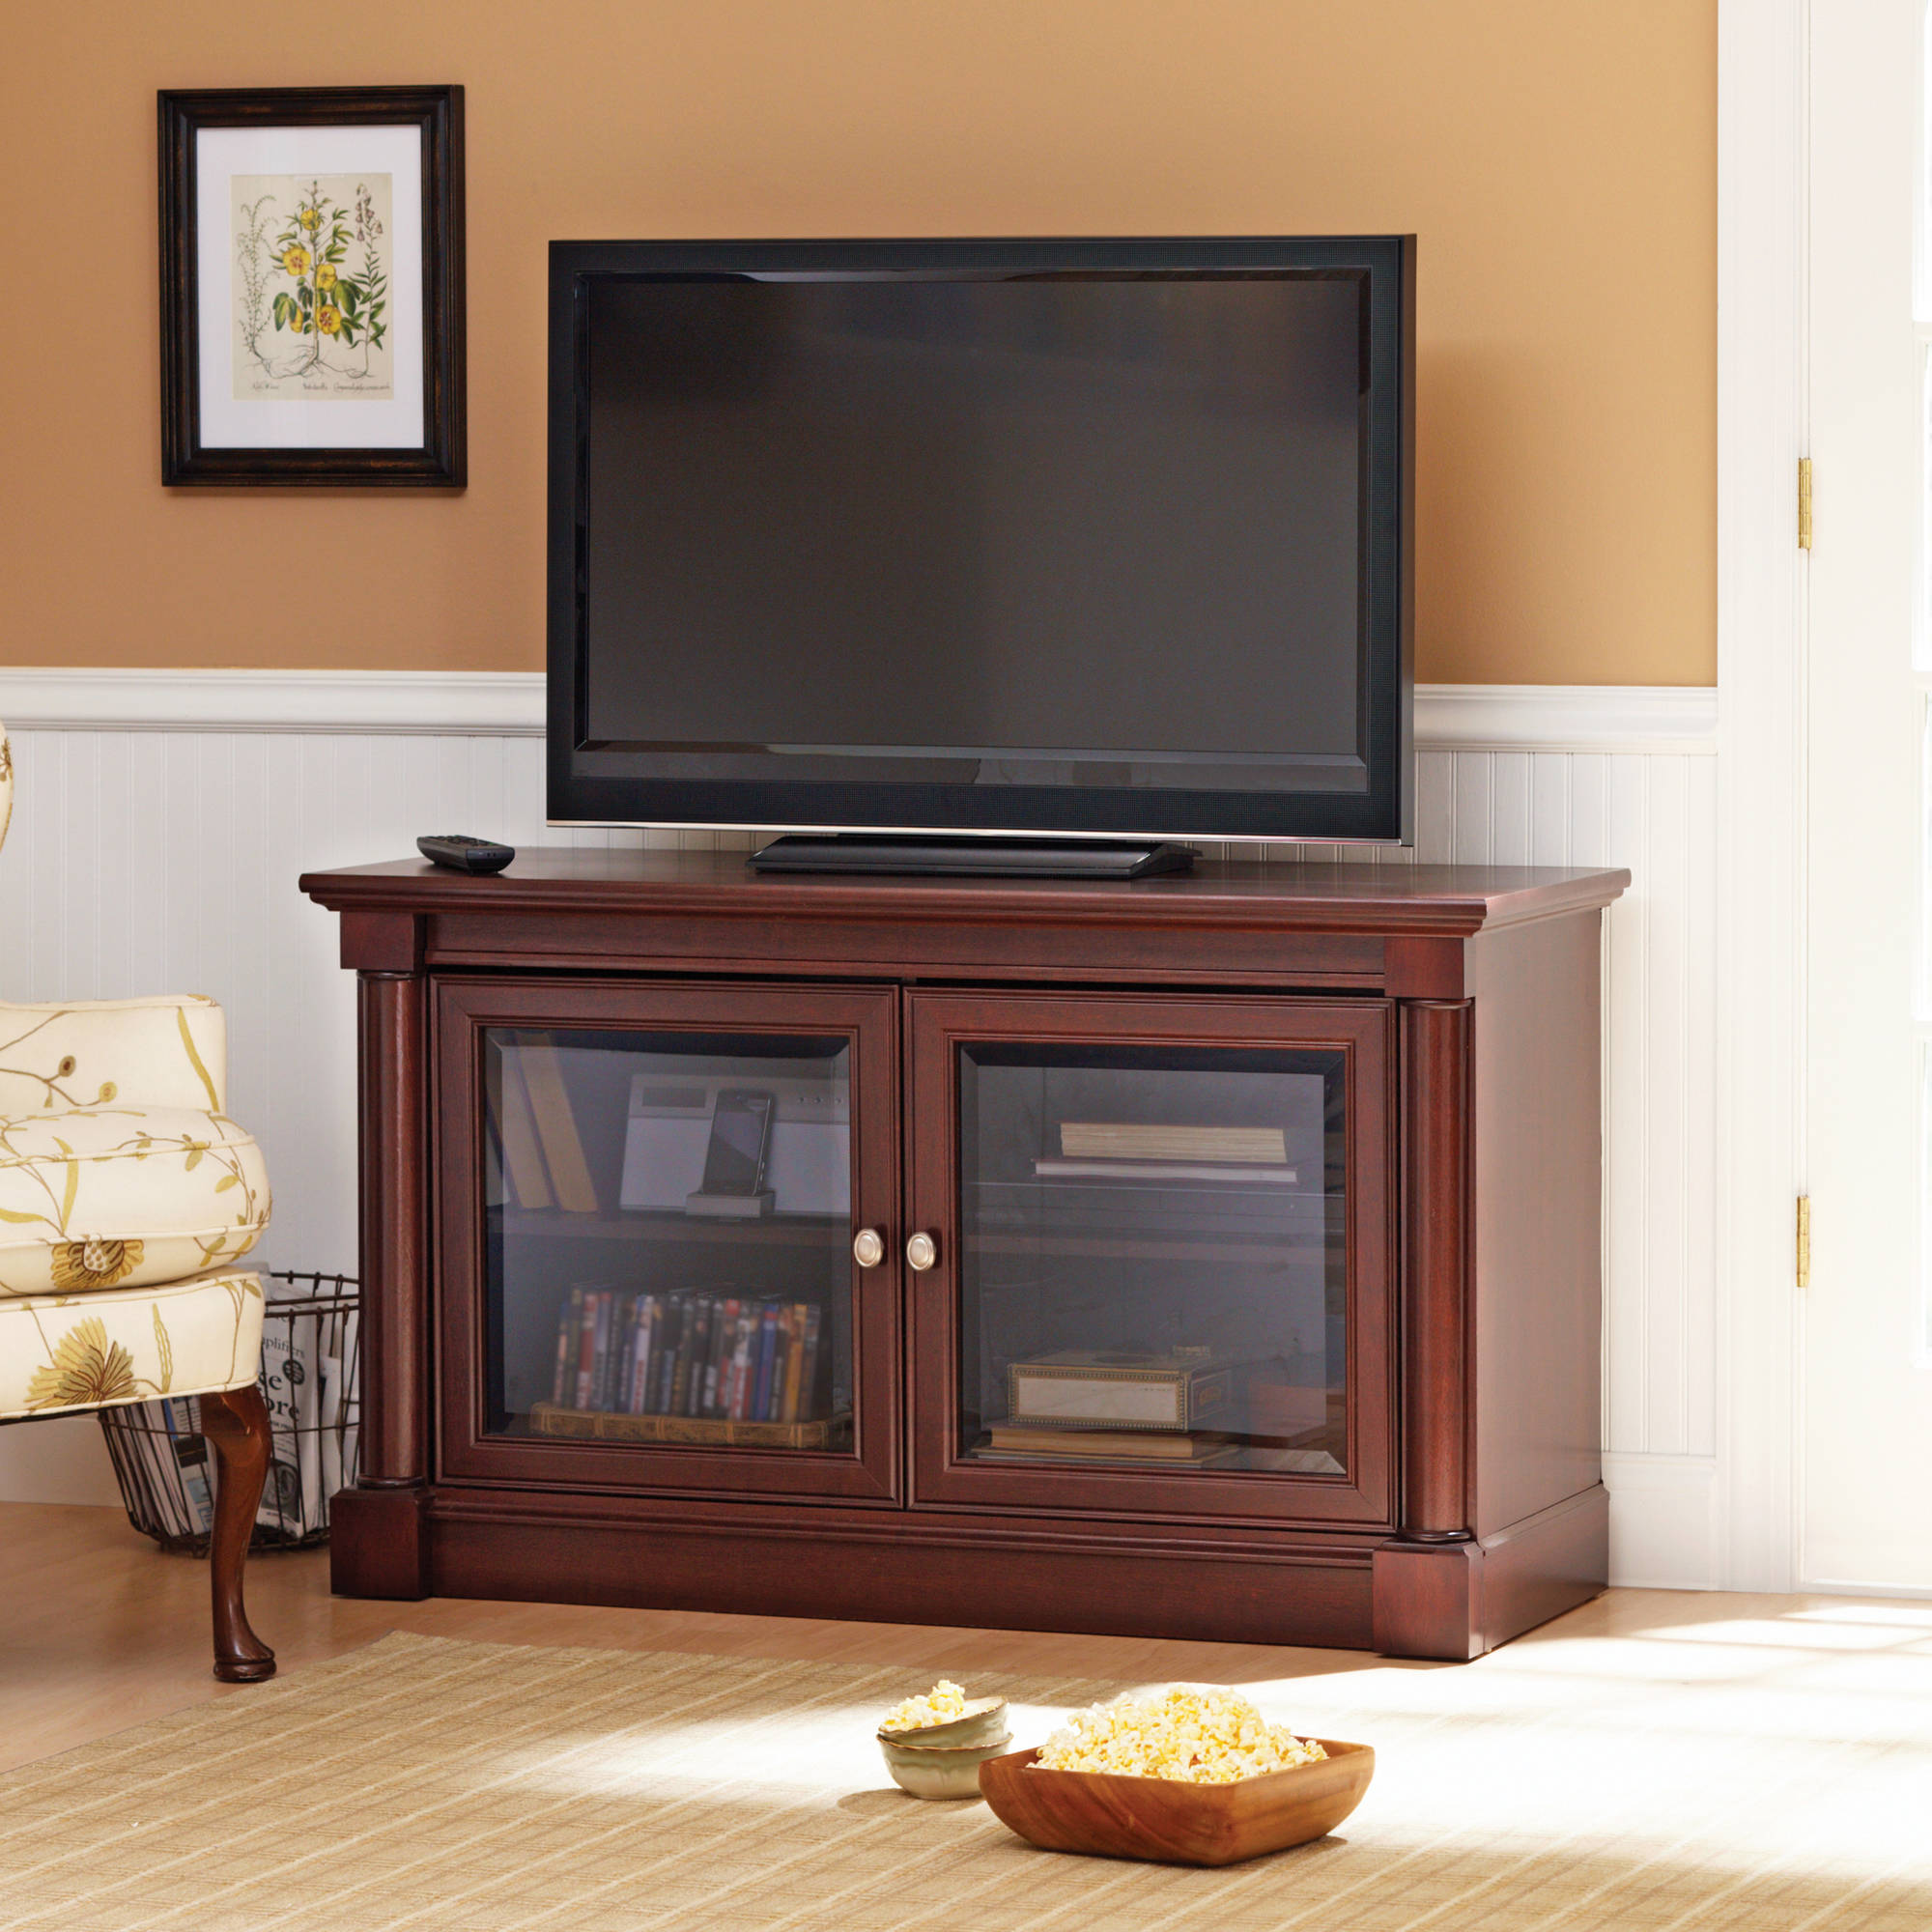 better homes and gardens wood flat panel tv stand, box 1 - walmart